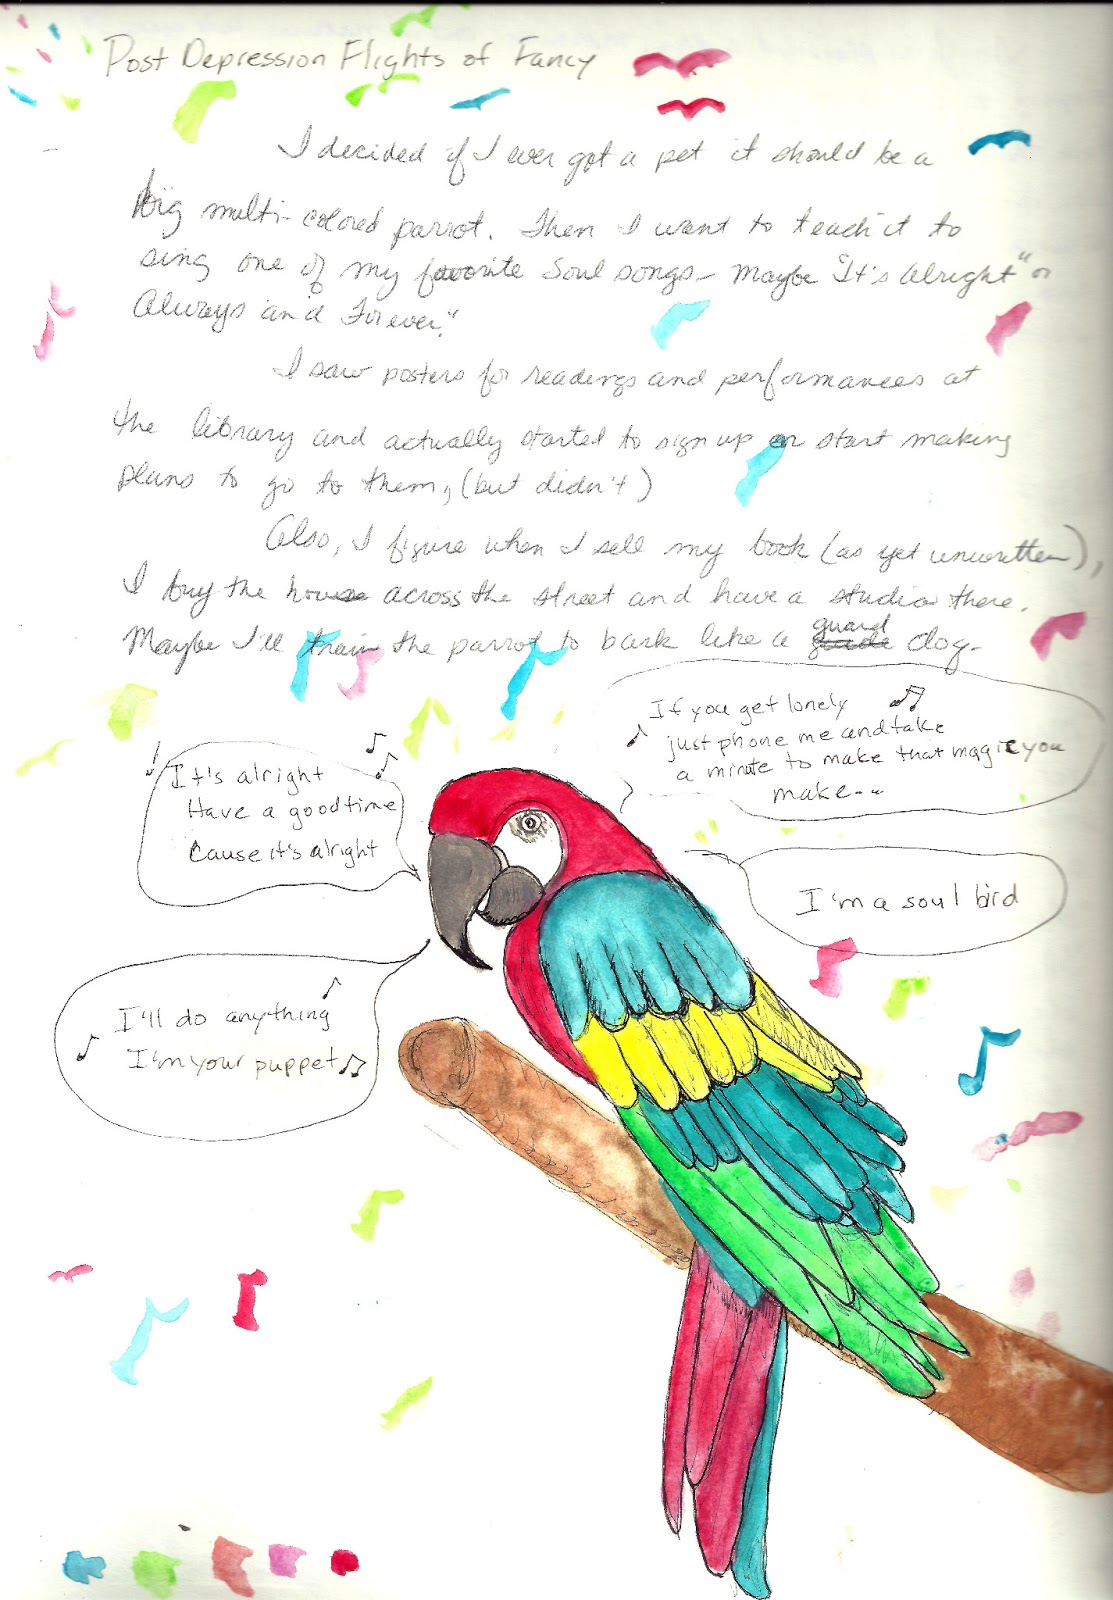 My favourite bird parrot essay